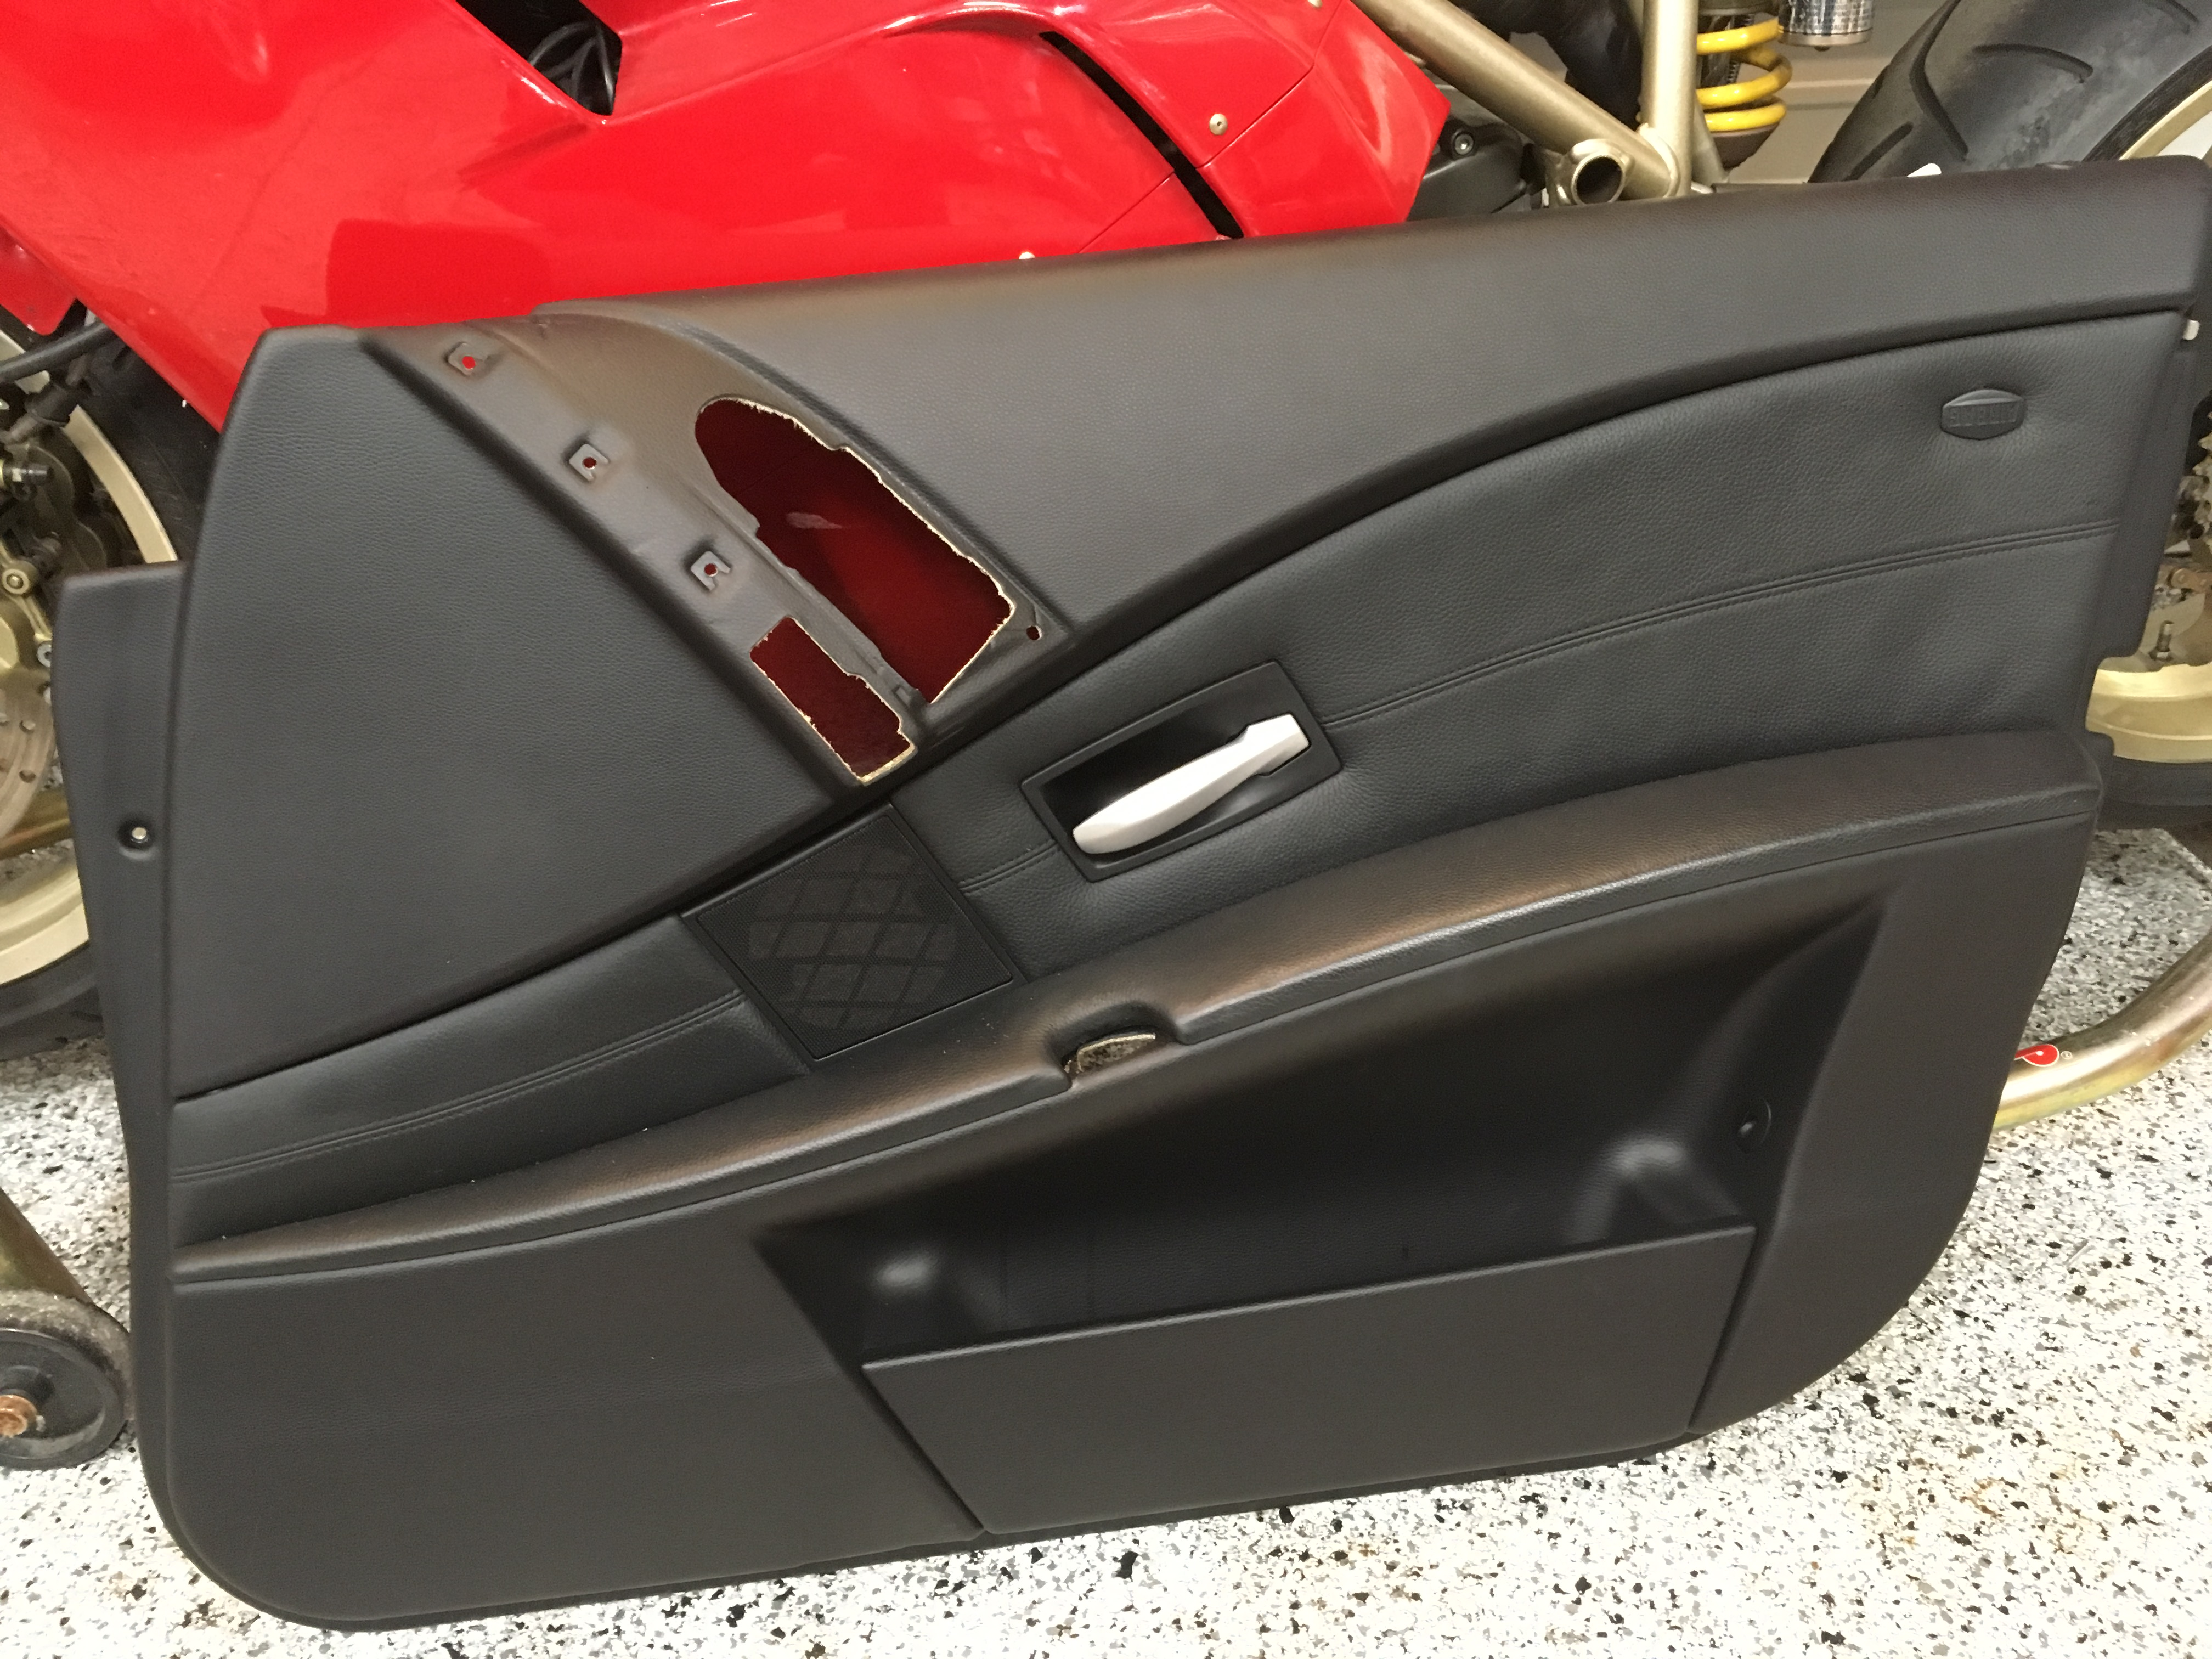 Black M5 door panels with the shade option-2017-01-21-17.18.26.jpg